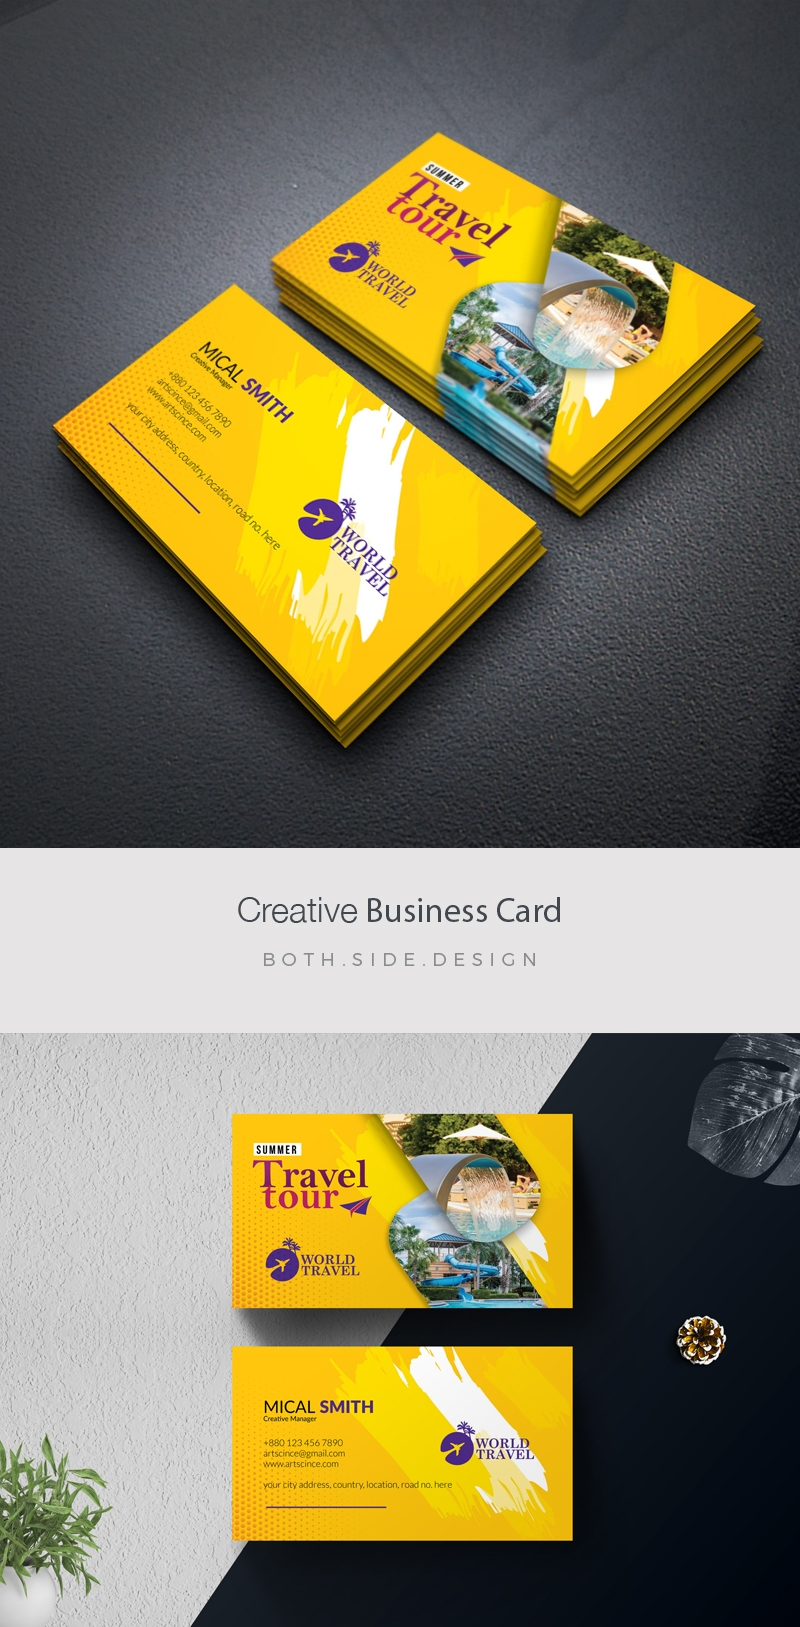 Travel Tours BusinessCard With Yellow Accent